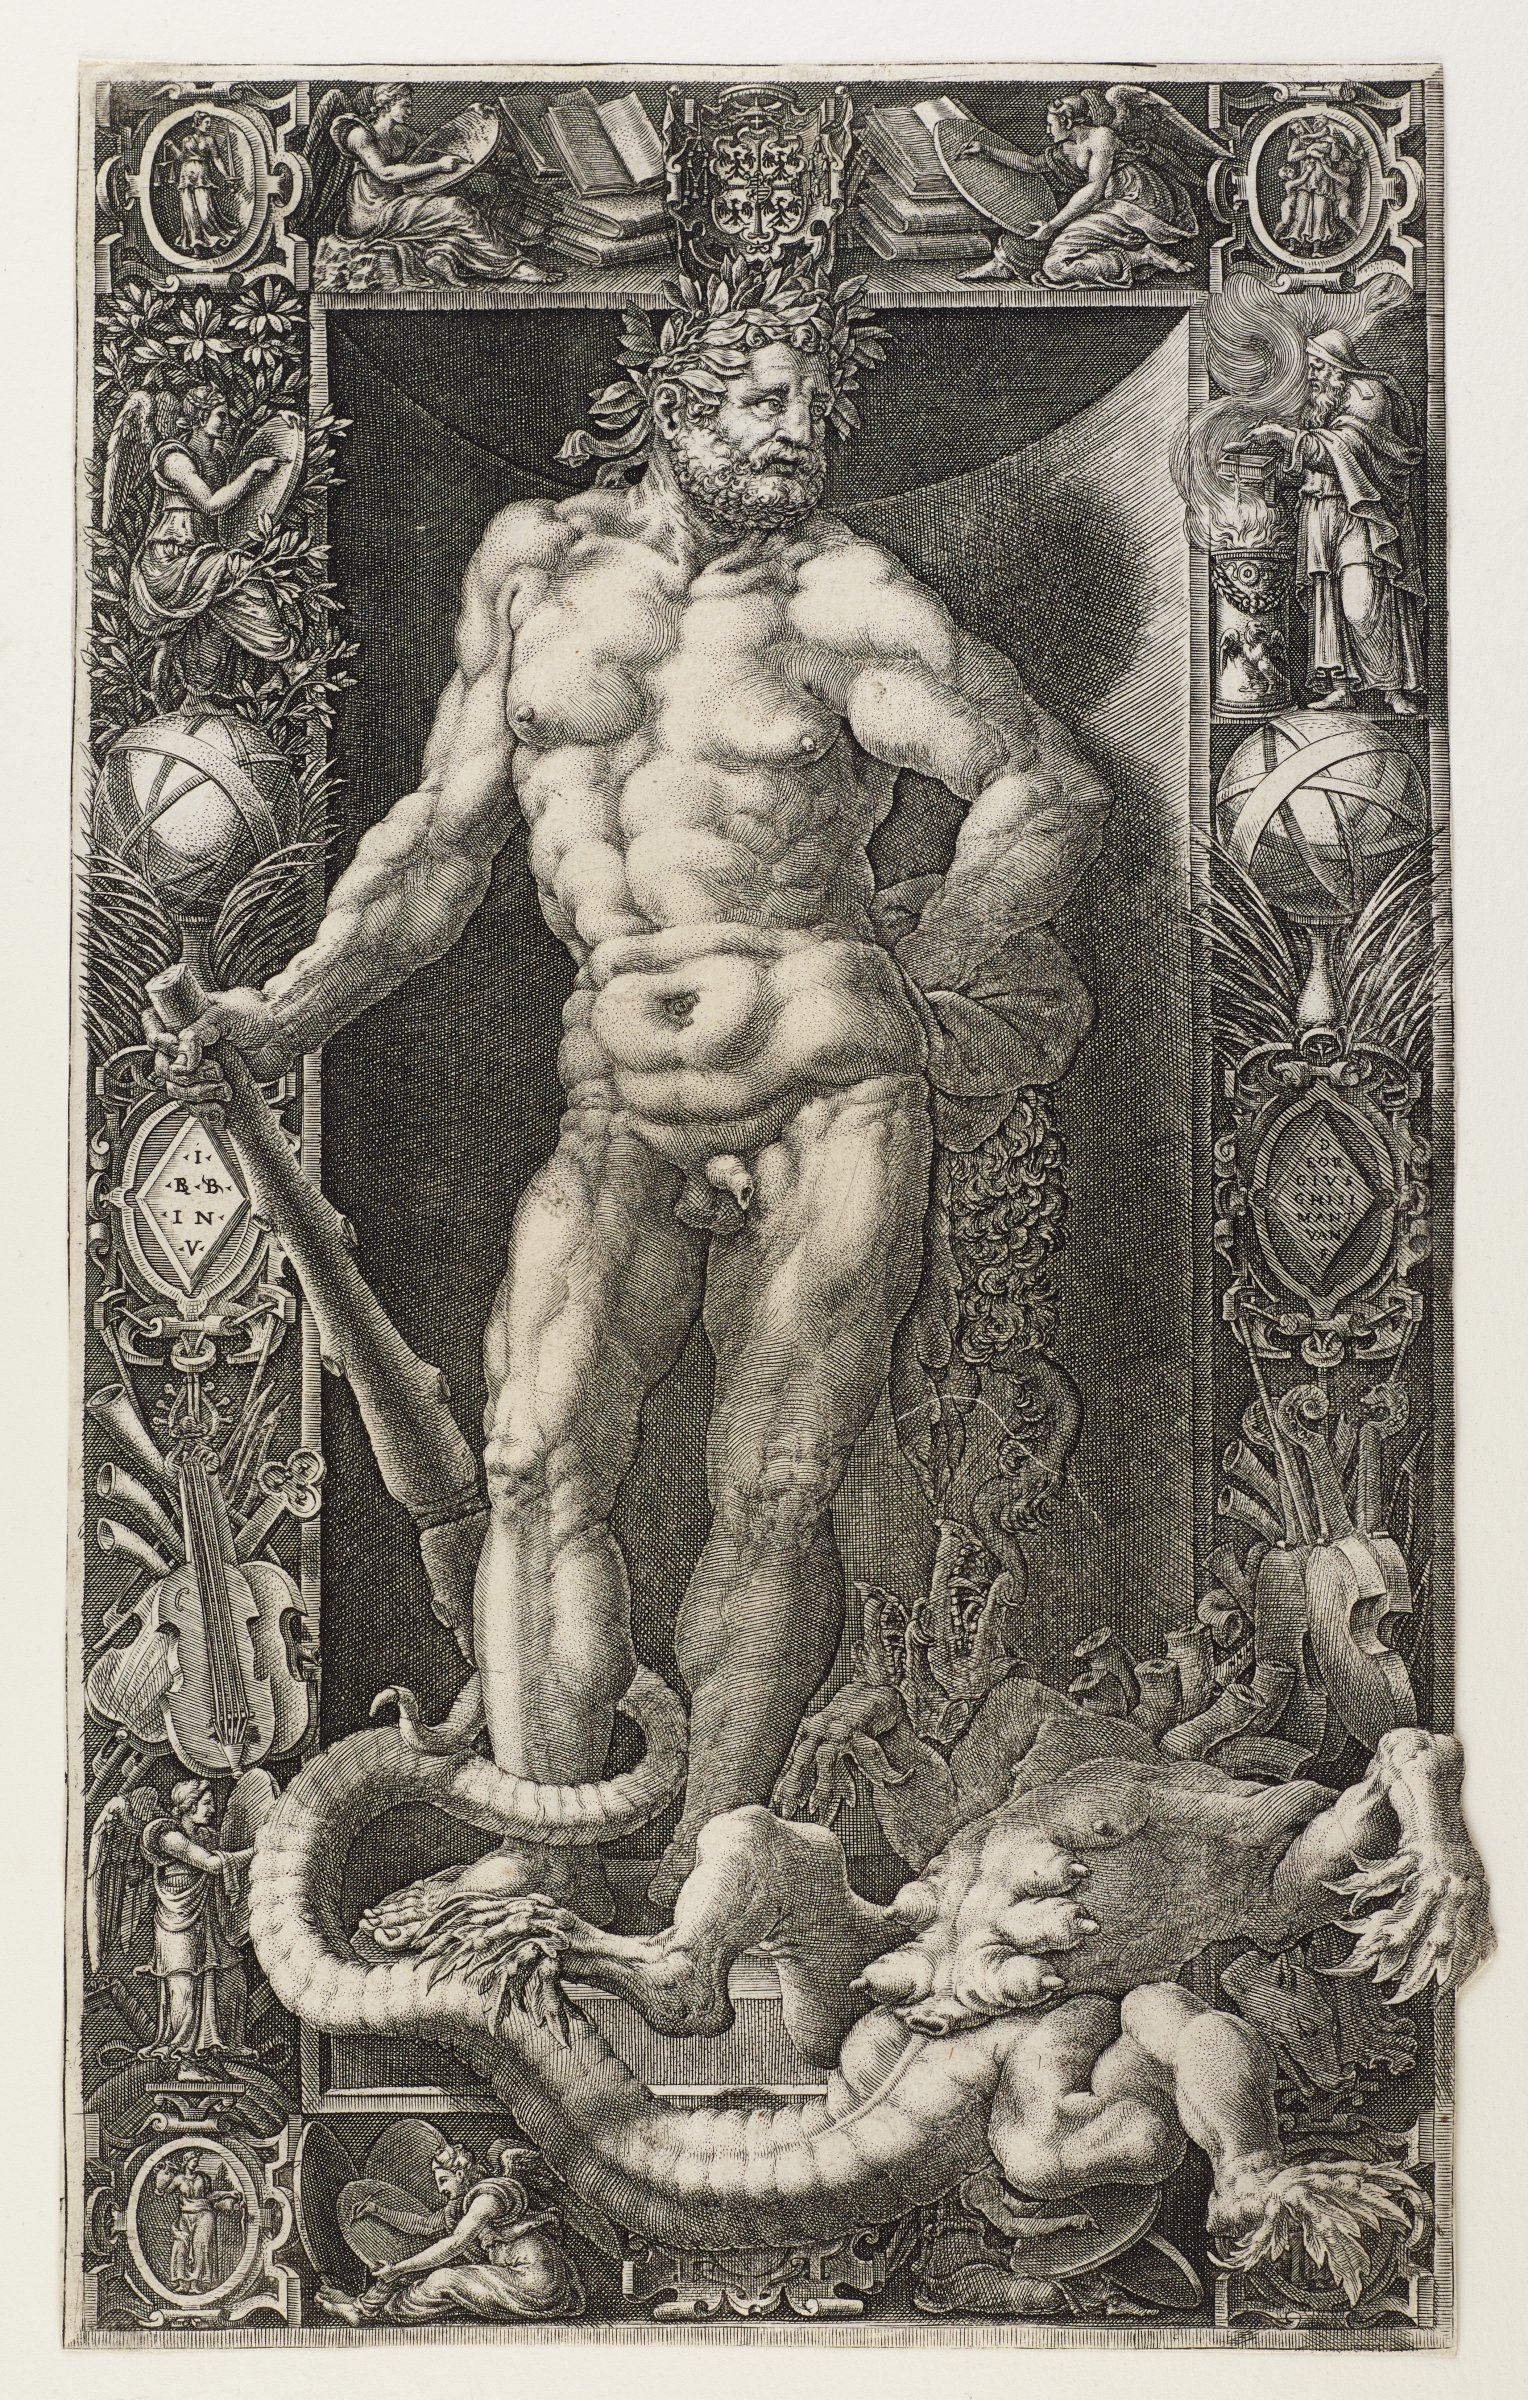 The main figure, Hercules, is seen here as a muscular nude man, standing in a contrapposto stance. In his right hand he holds a club, and his left arm rests on his hip. The defeated hydra is lying in the right corner with its tail loosely wrapped around Hercules' right ankle. A thick border around the perimeter contains varying imagery of figures, musical instruments, books, and plant life.